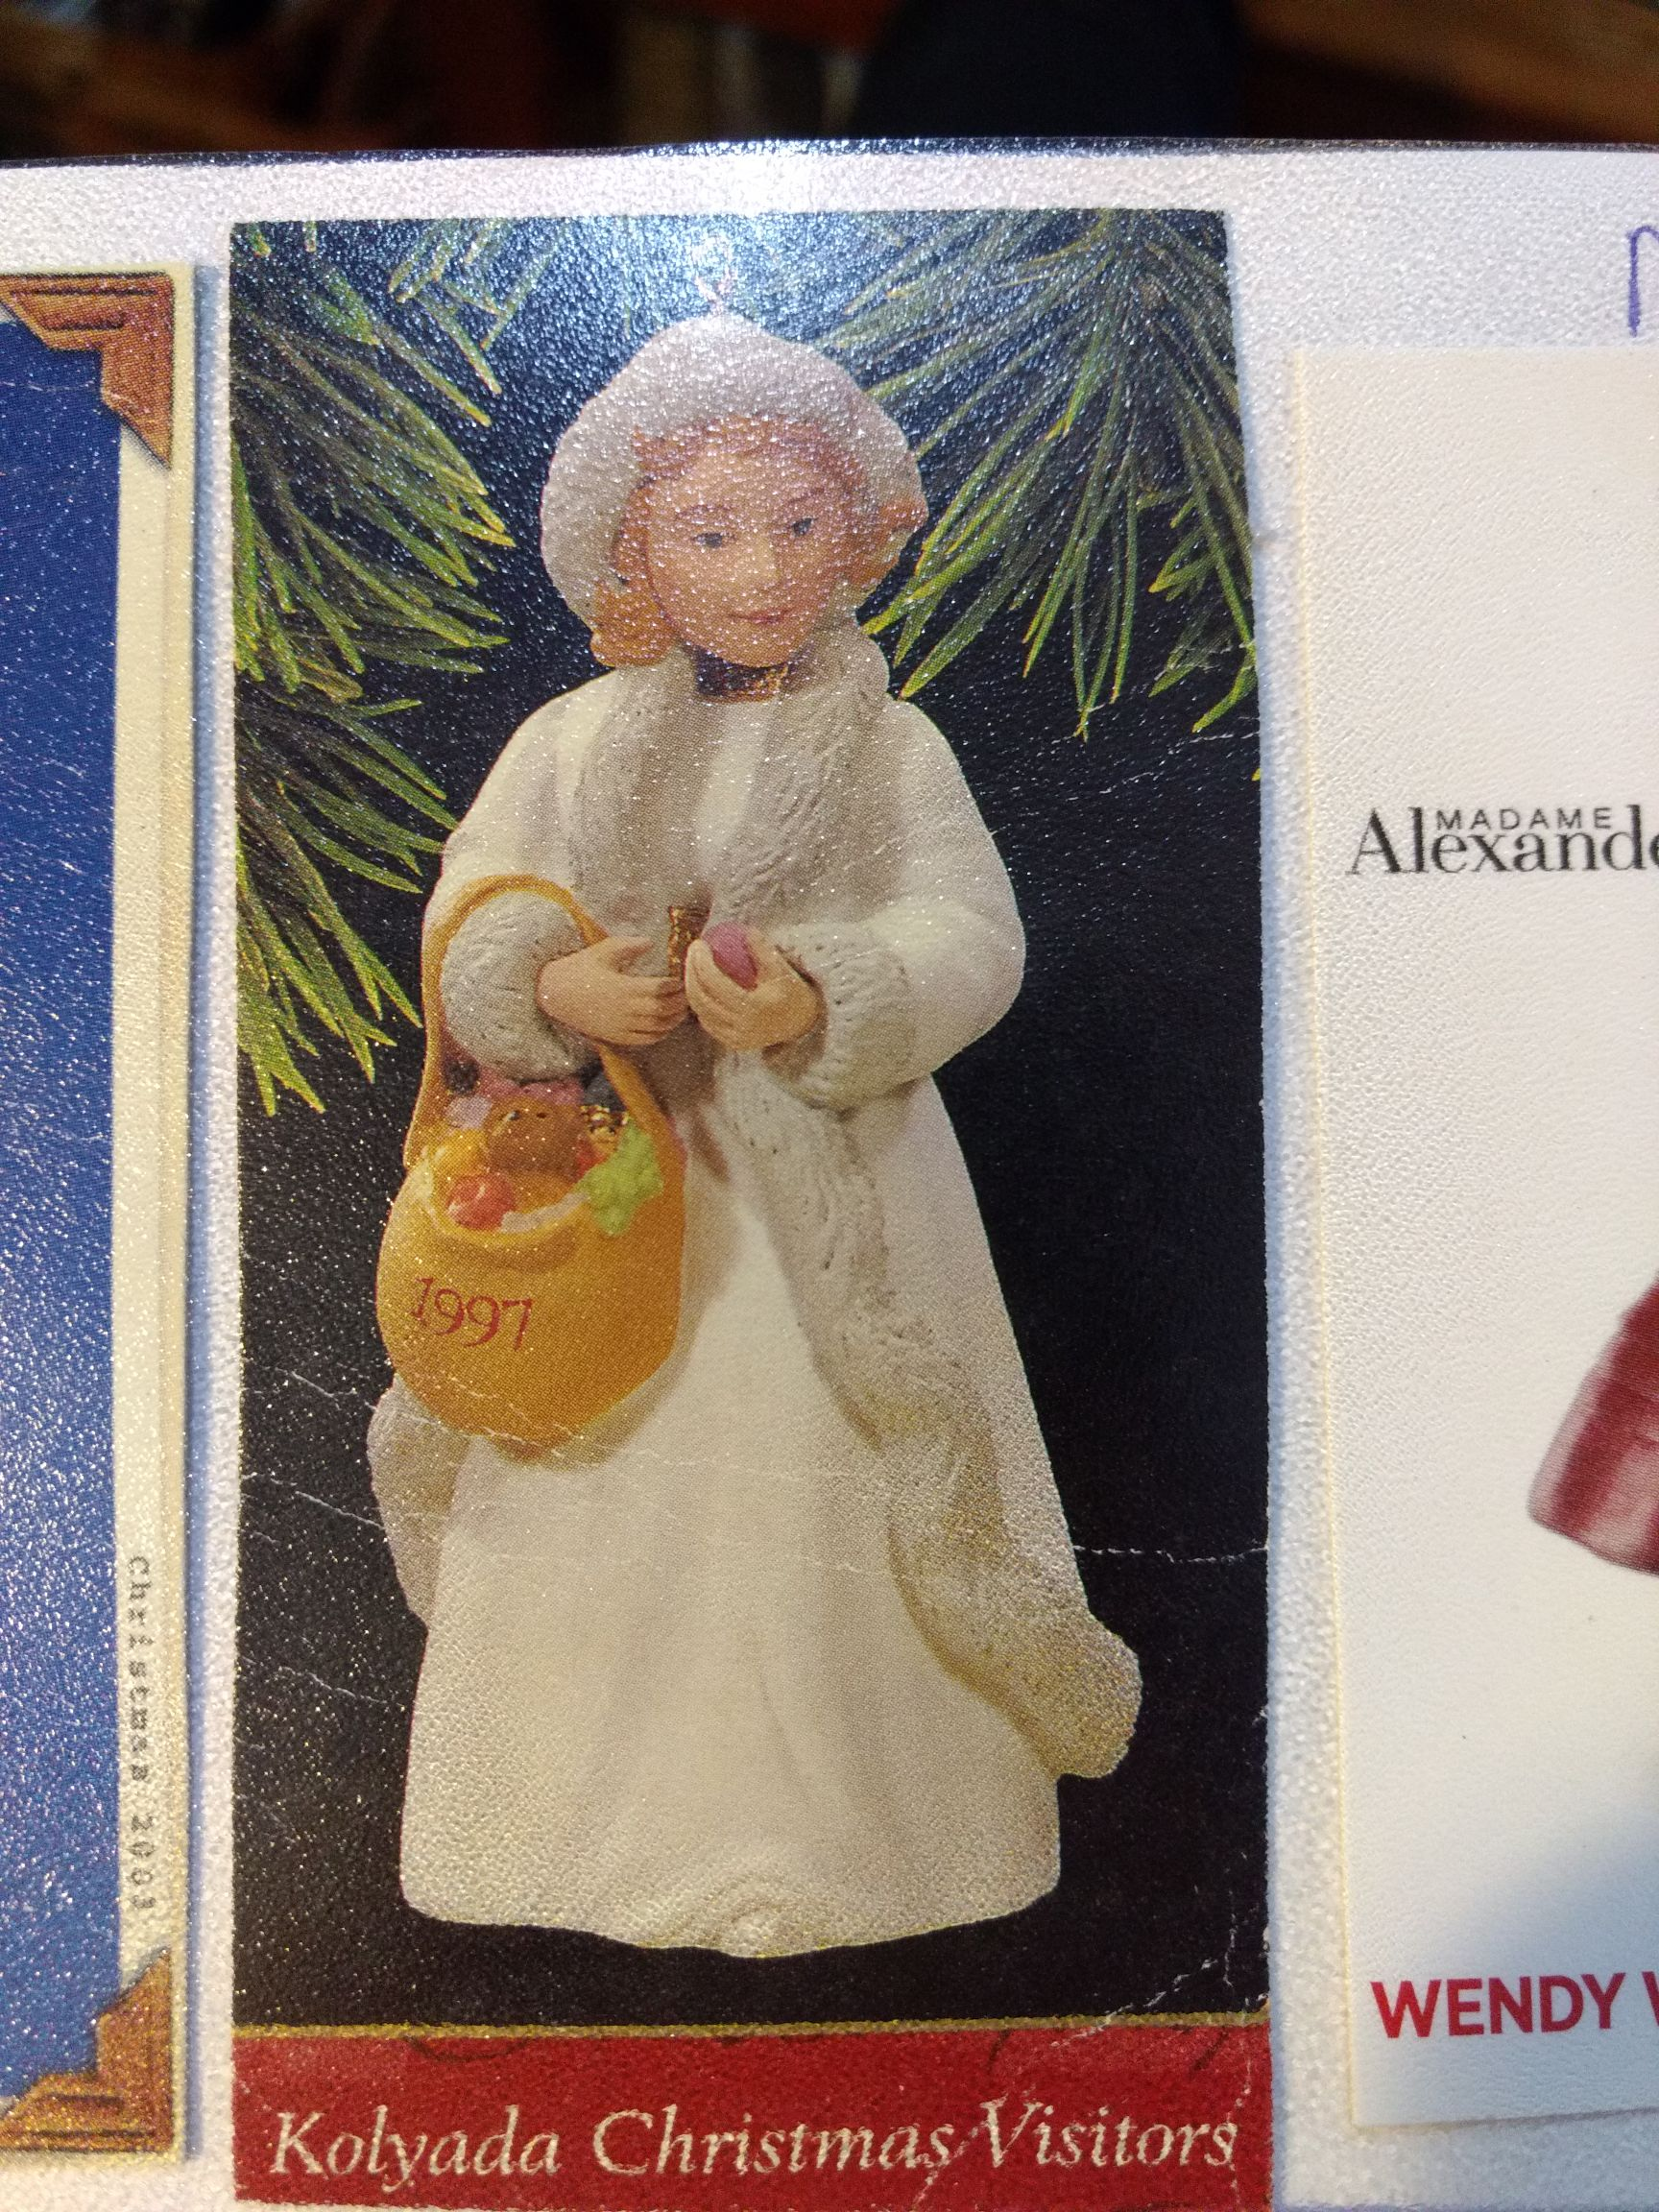 Madam Alexander - Kolyada Christmas Visitors Ornament - Hallmark front image (front cover)